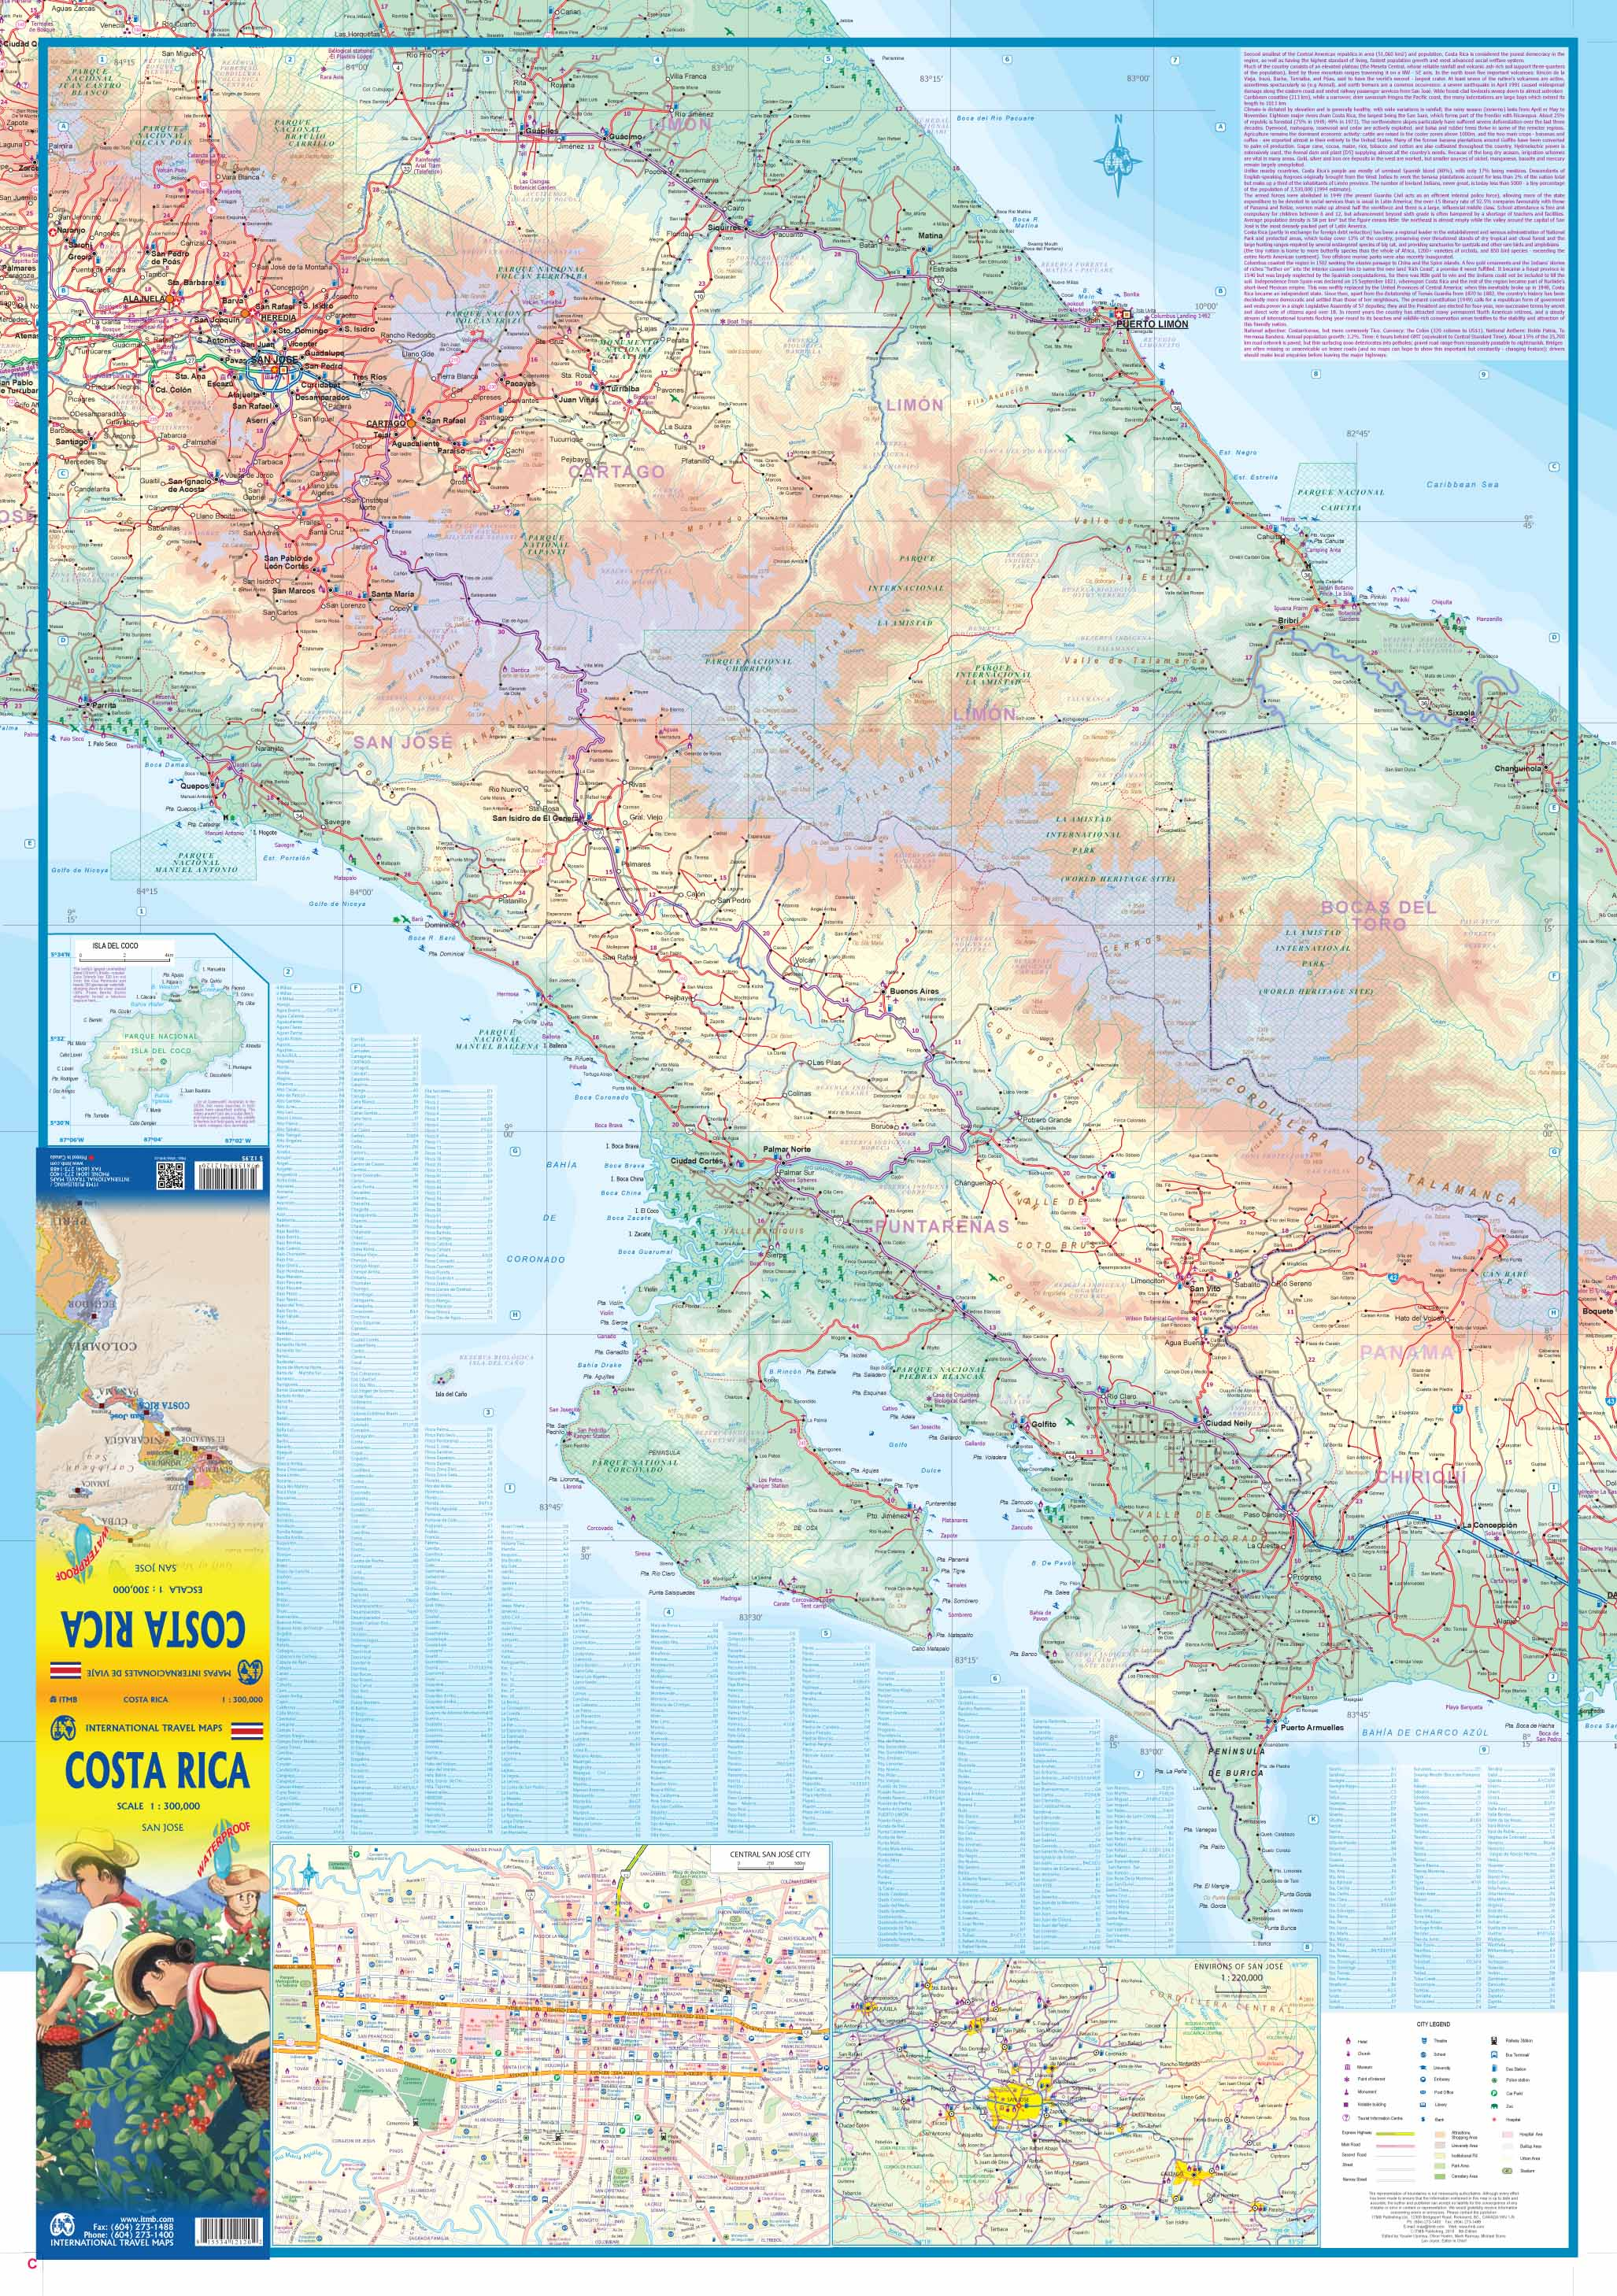 Maps for travel City Maps Road Maps Guides Globes Topographic – Travel Map Of Costa Rica